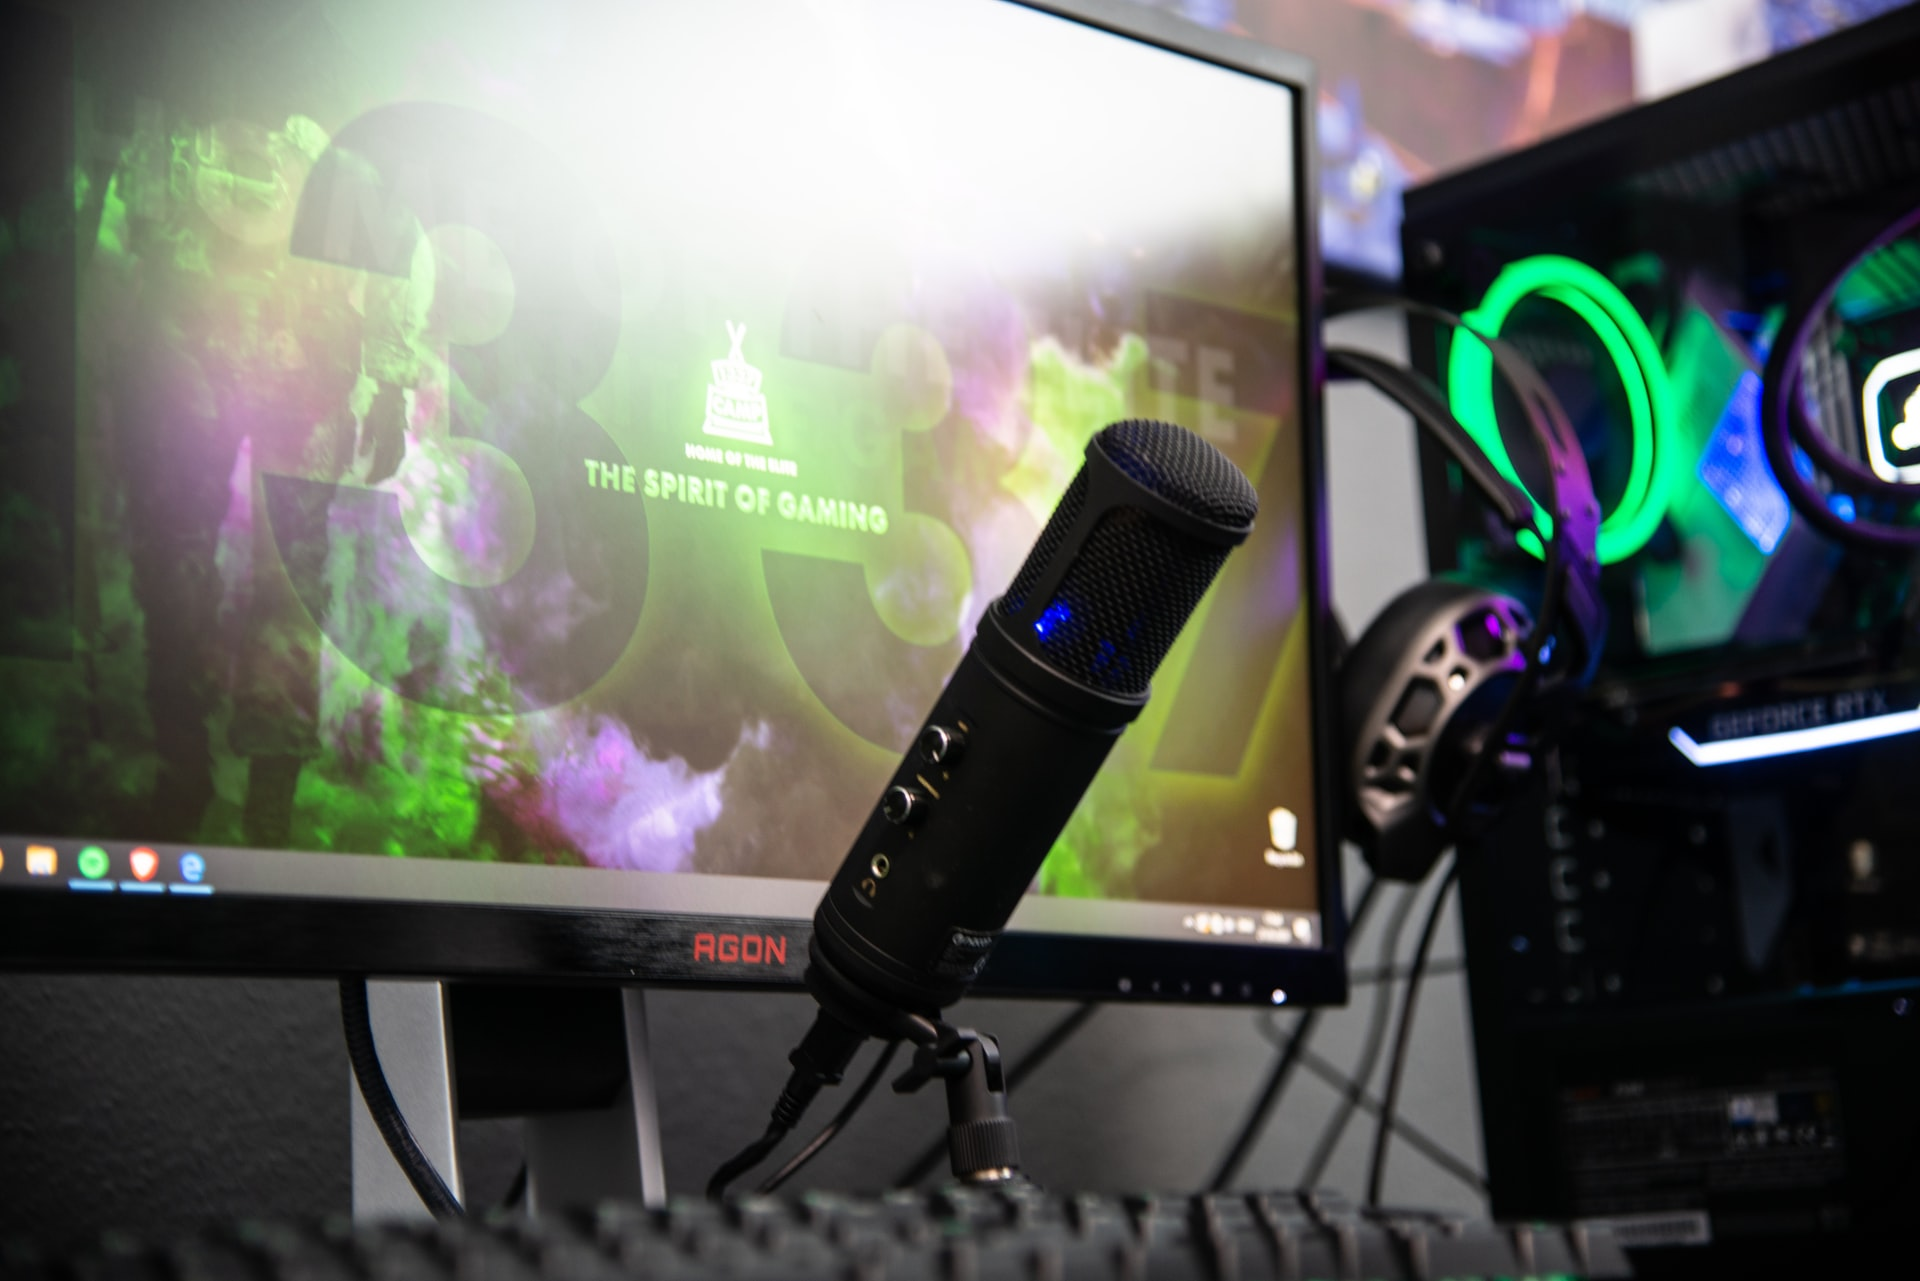 Can Streaming Be a Full-Time Job?